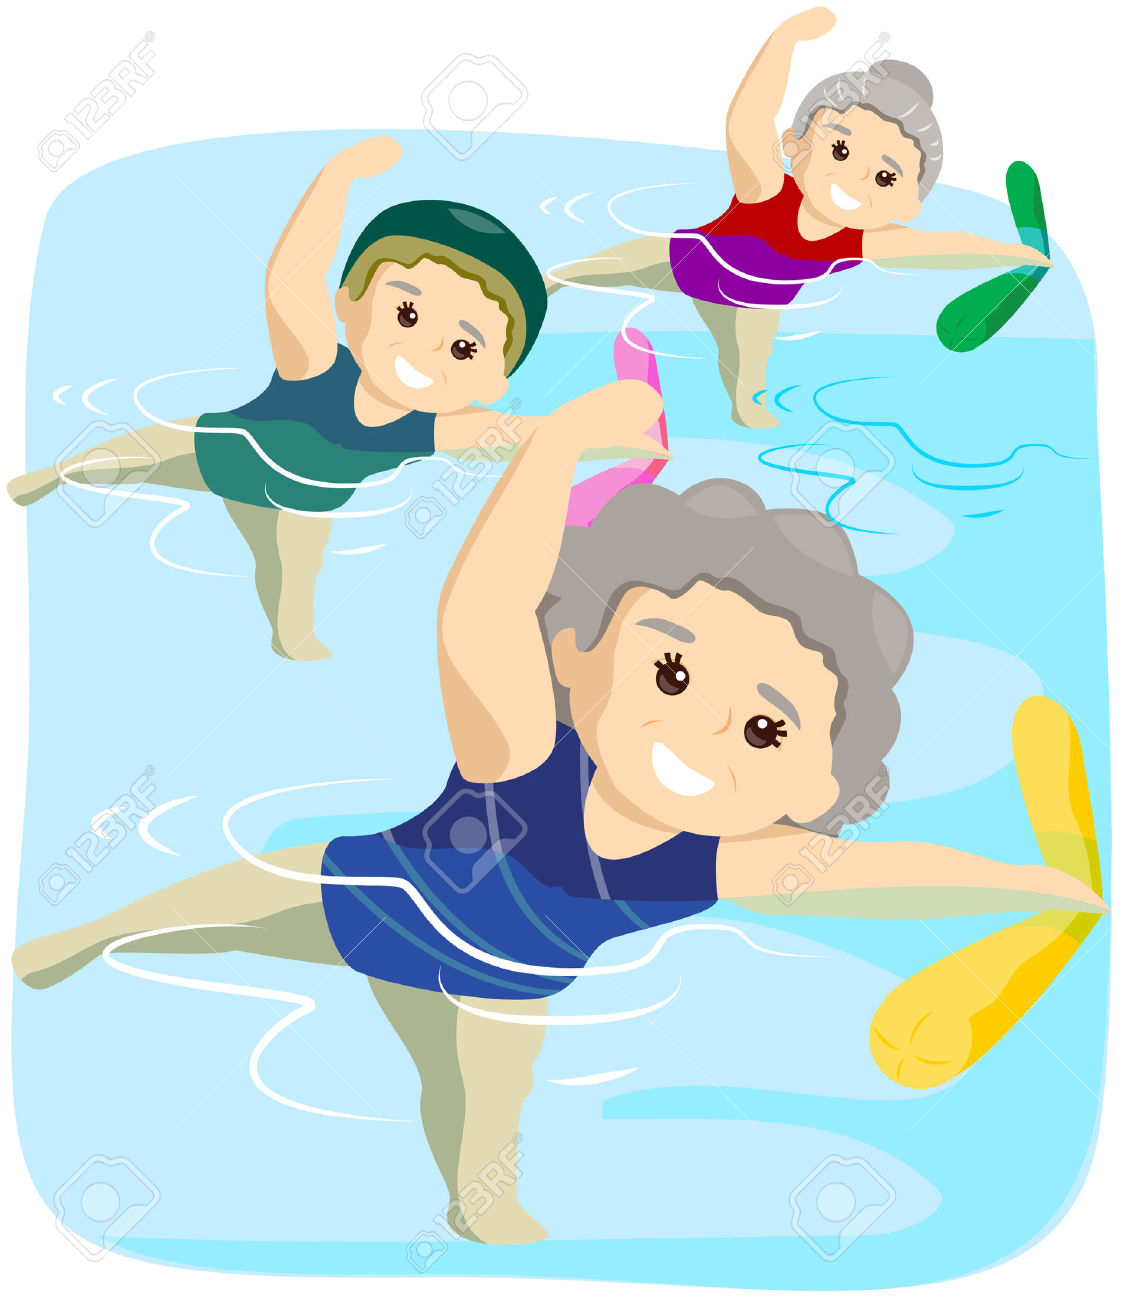 4090183-Water-Exercise-for-Seniors-with-Clipping-Path-Stock-Vector-swimming